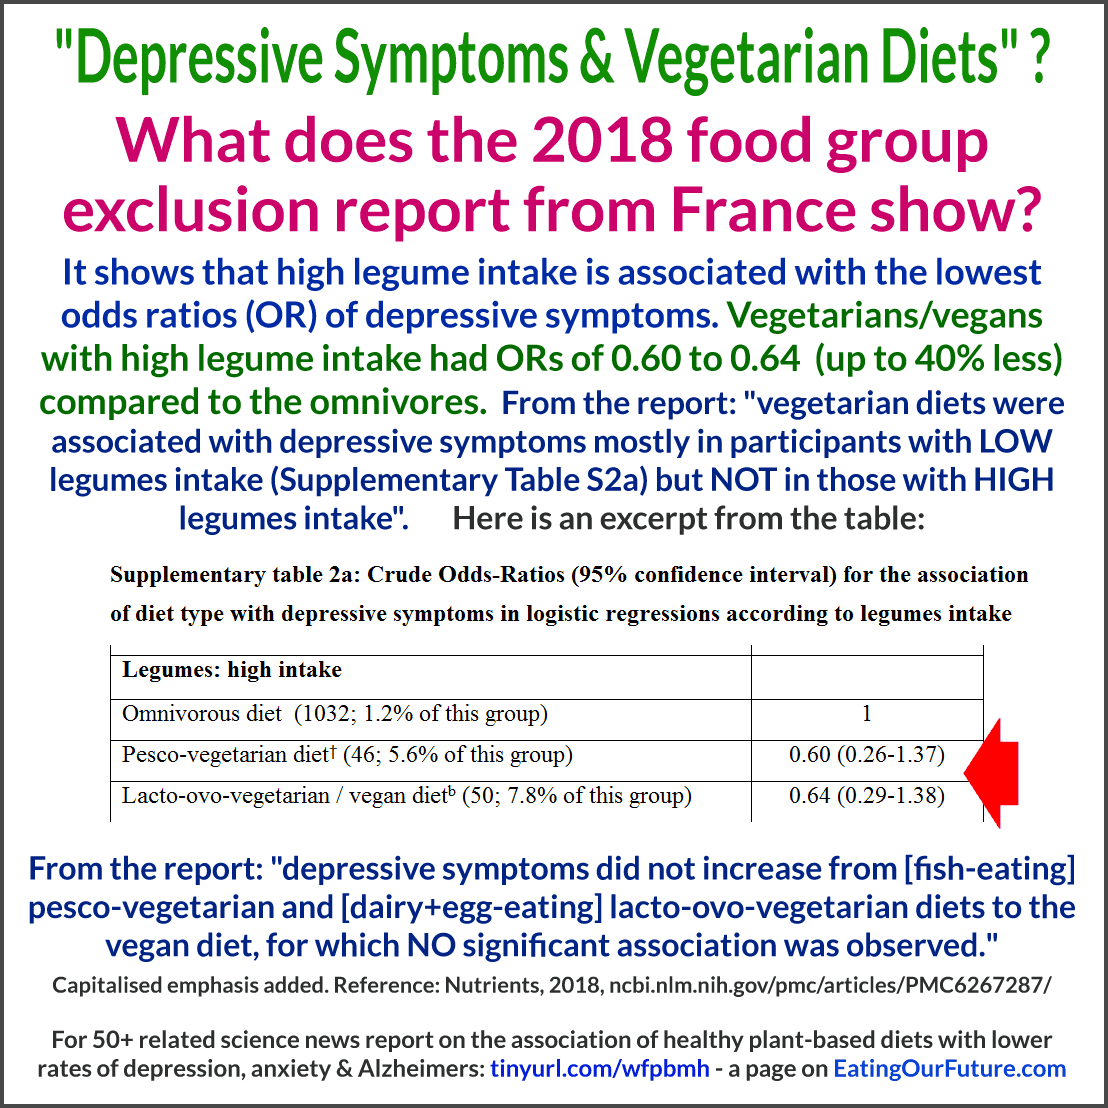 Debunk Debunked Refute French Constances Depression report study Vegans Vegetarians more less Depressed Vegan Vegetarian Diets Veganism Vegetarianism causes caused higher lower rates risk Mental Health Disorders Illness Mentally Disturbed